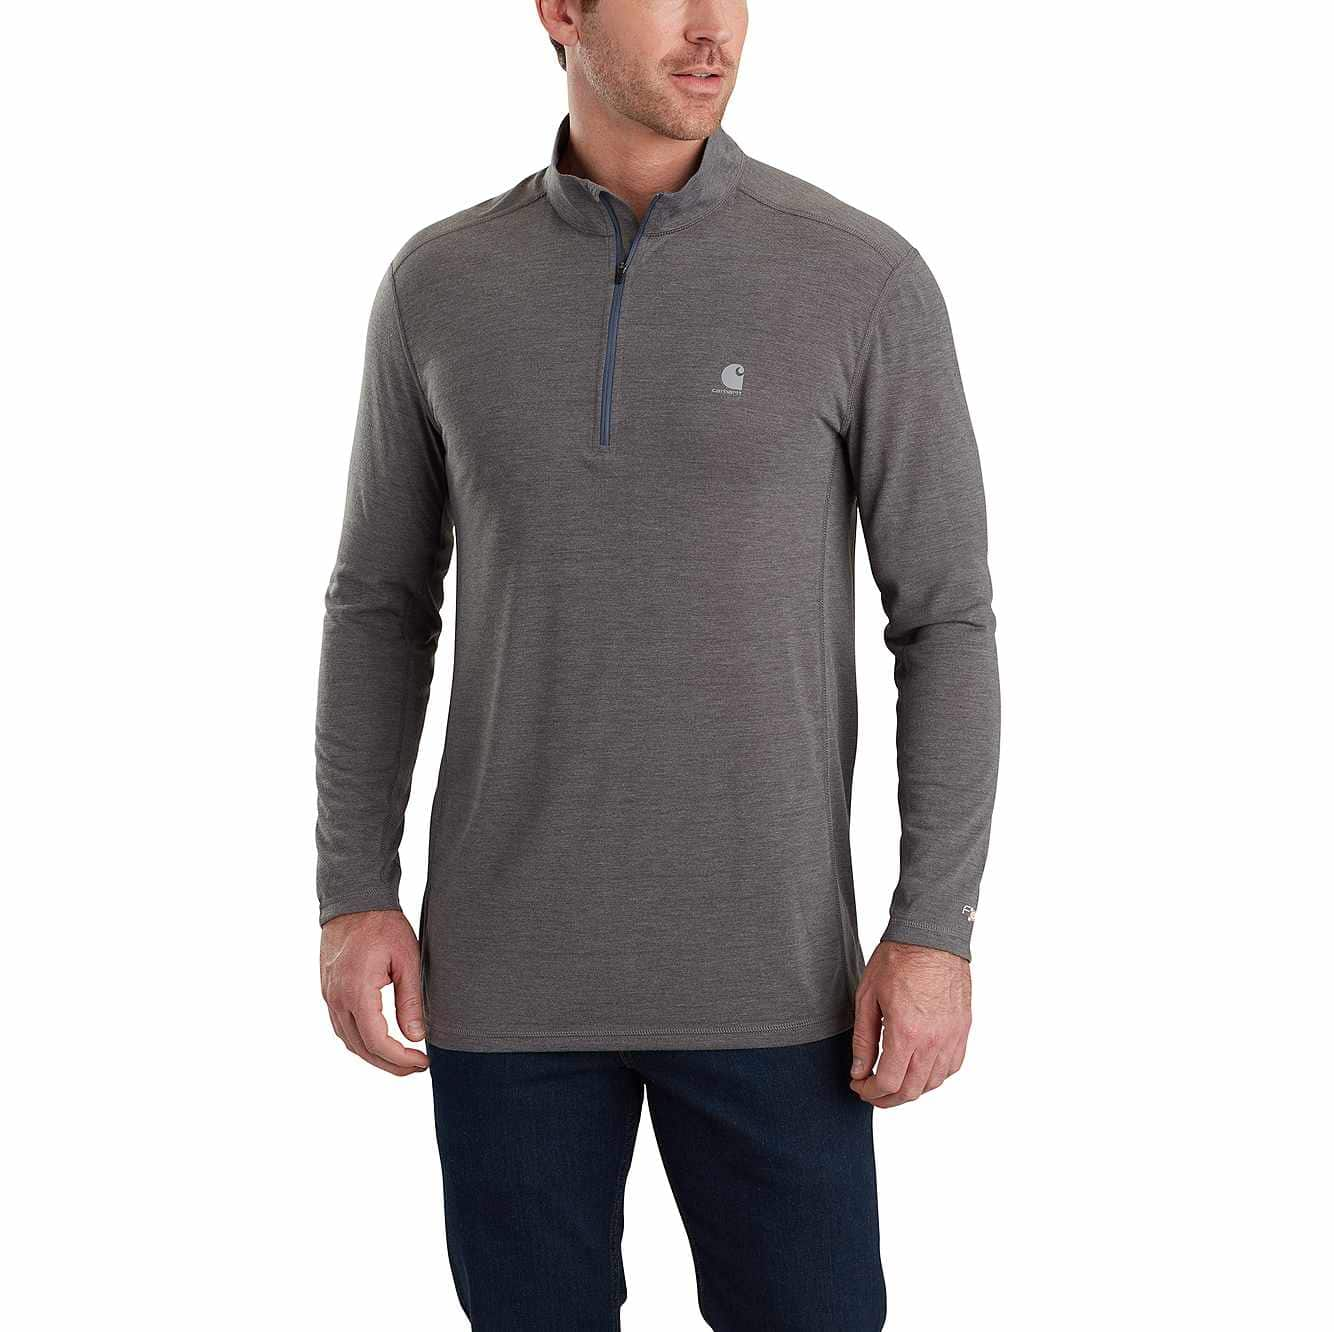 Picture of Force Extremes® Half-Zip Long Sleeve Shirt in Shadow Heather